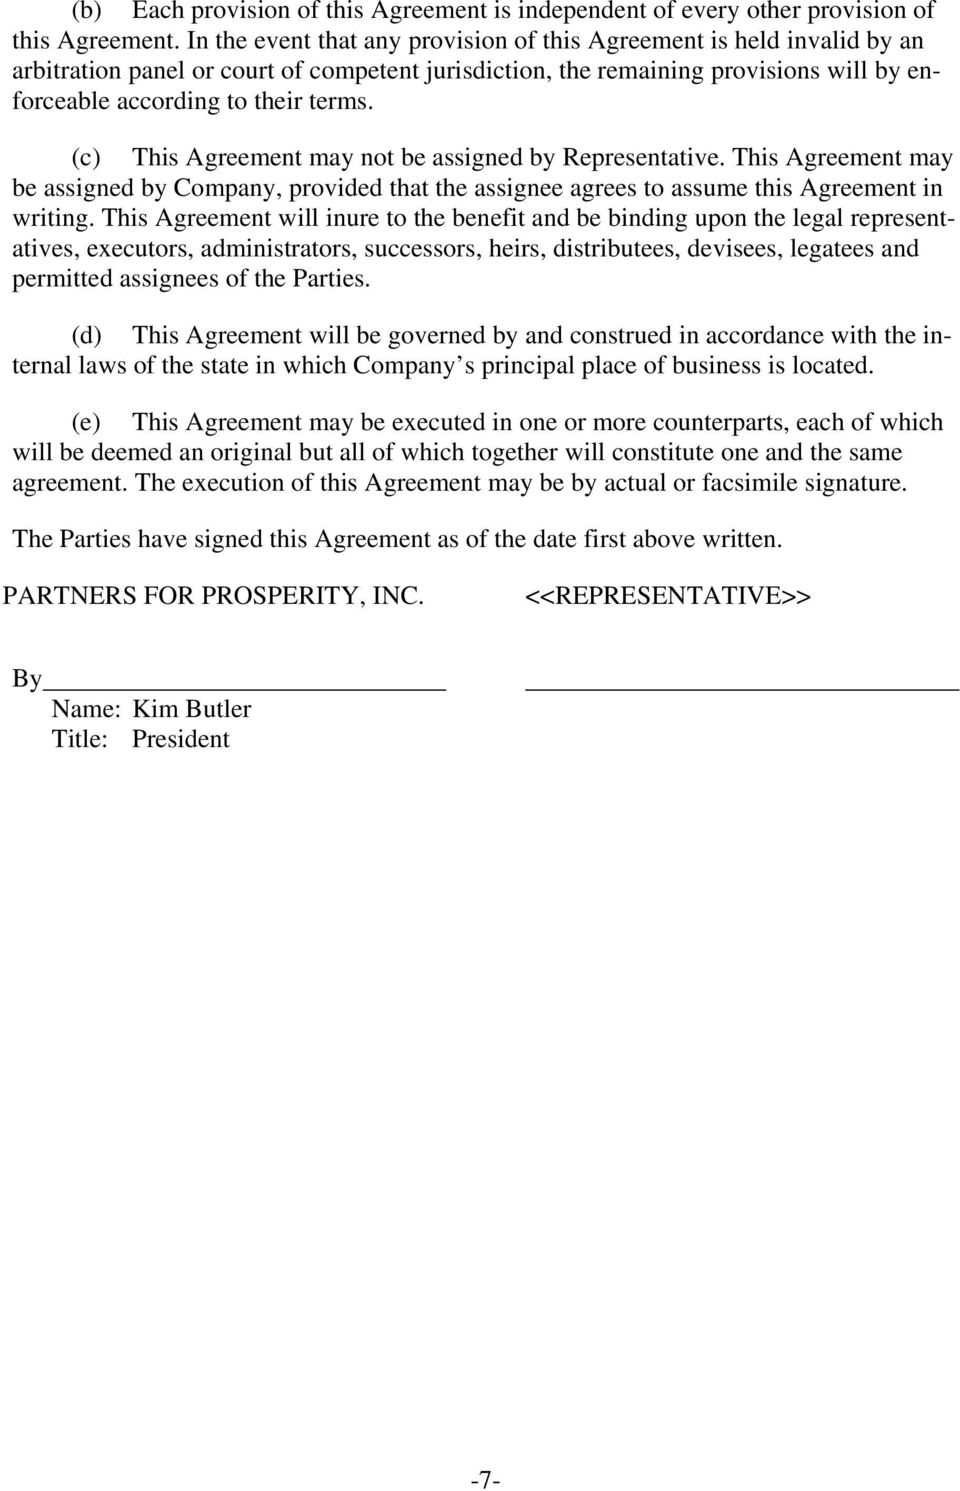 (c) This Agreement may not be assigned by Representative. This Agreement may be assigned by Company, provided that the assignee agrees to assume this Agreement in writing.